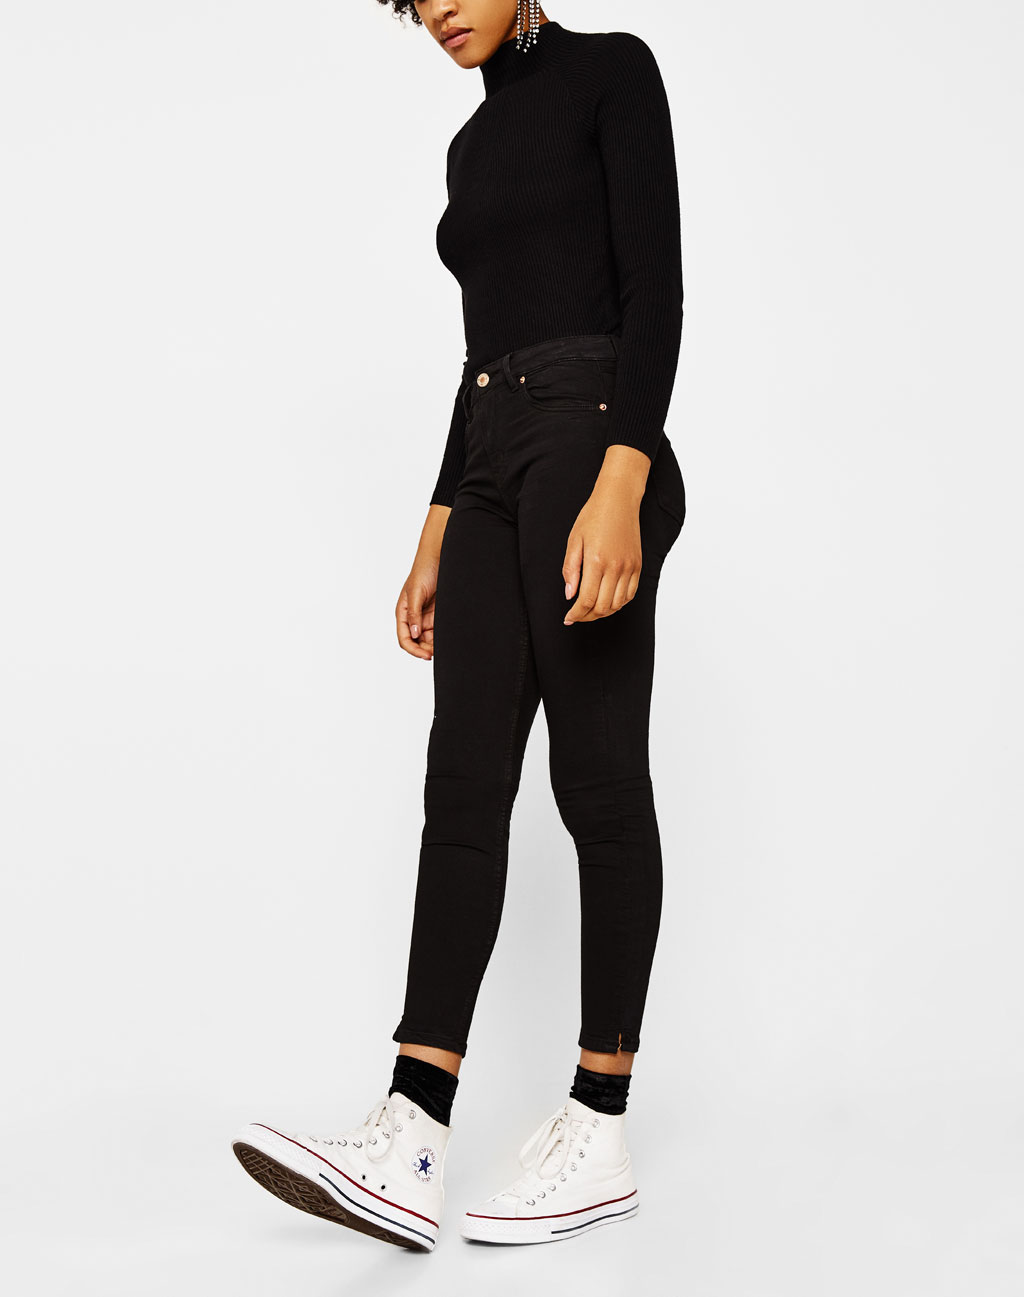 Pantalon super skinny taille normale